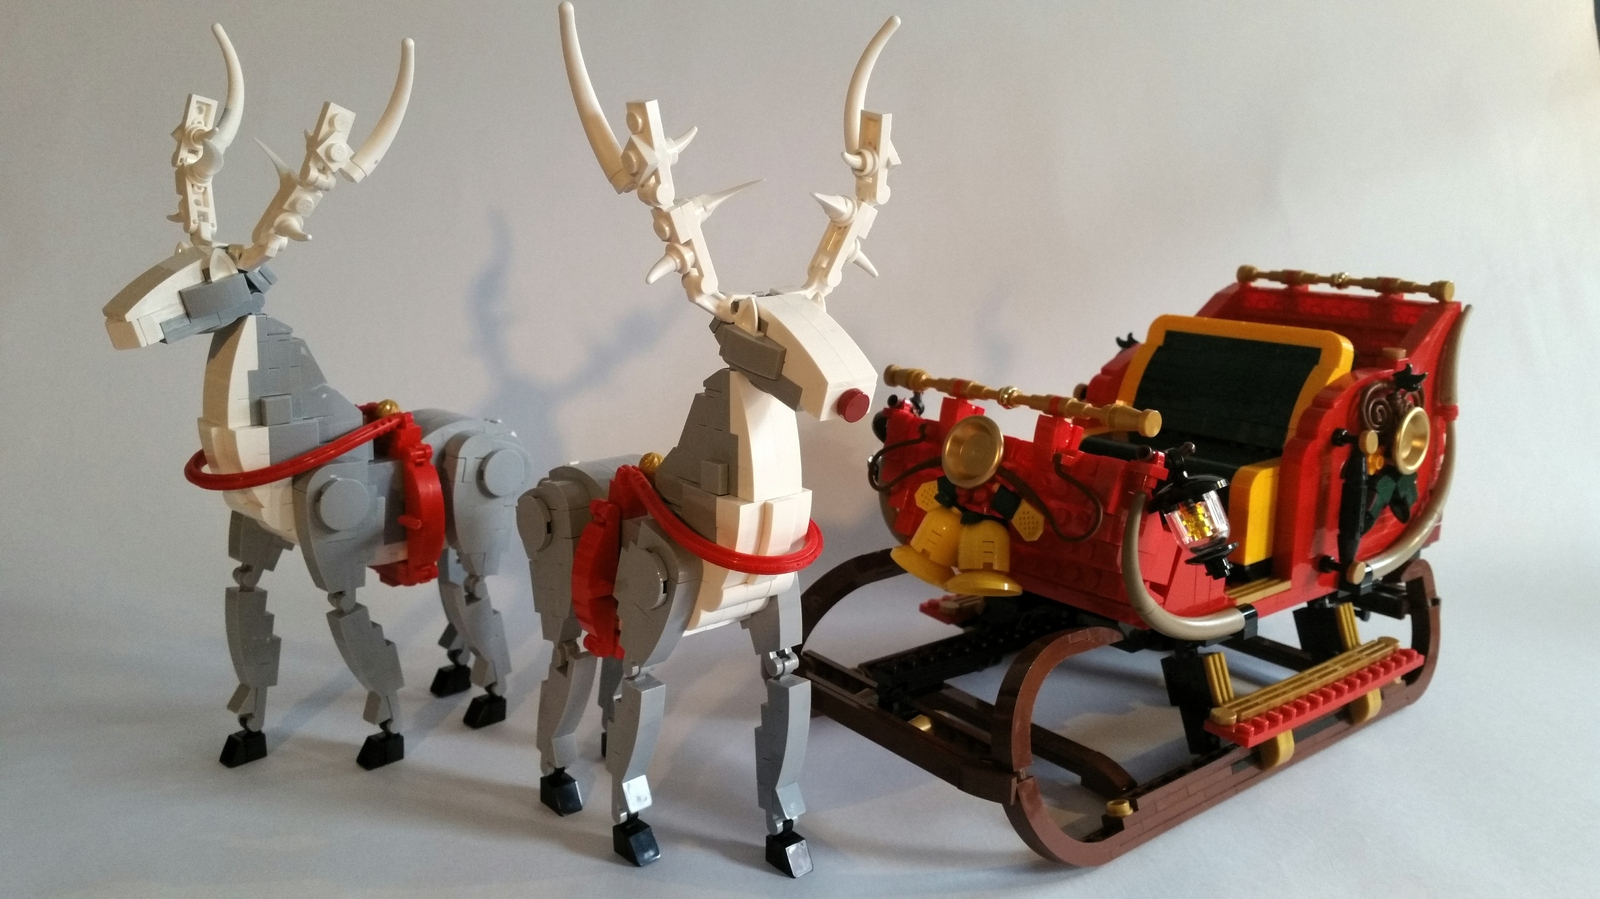 lego ideas product ideas ucs christmas sleigh and 2 reindeers